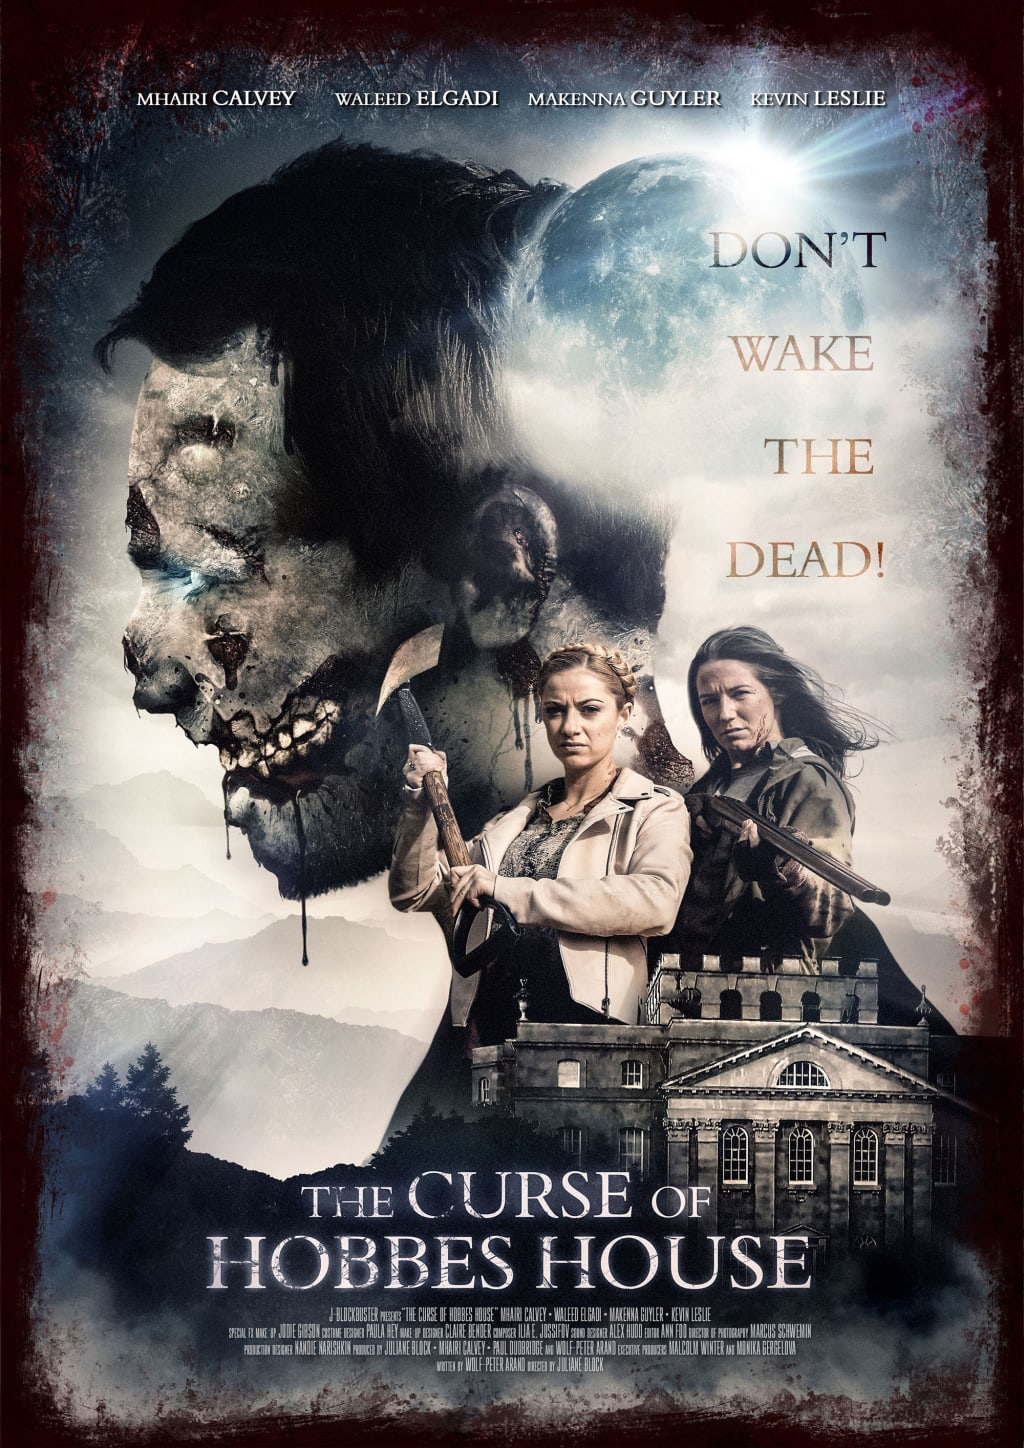 Film Review: 'The Curse of Hobbes House'